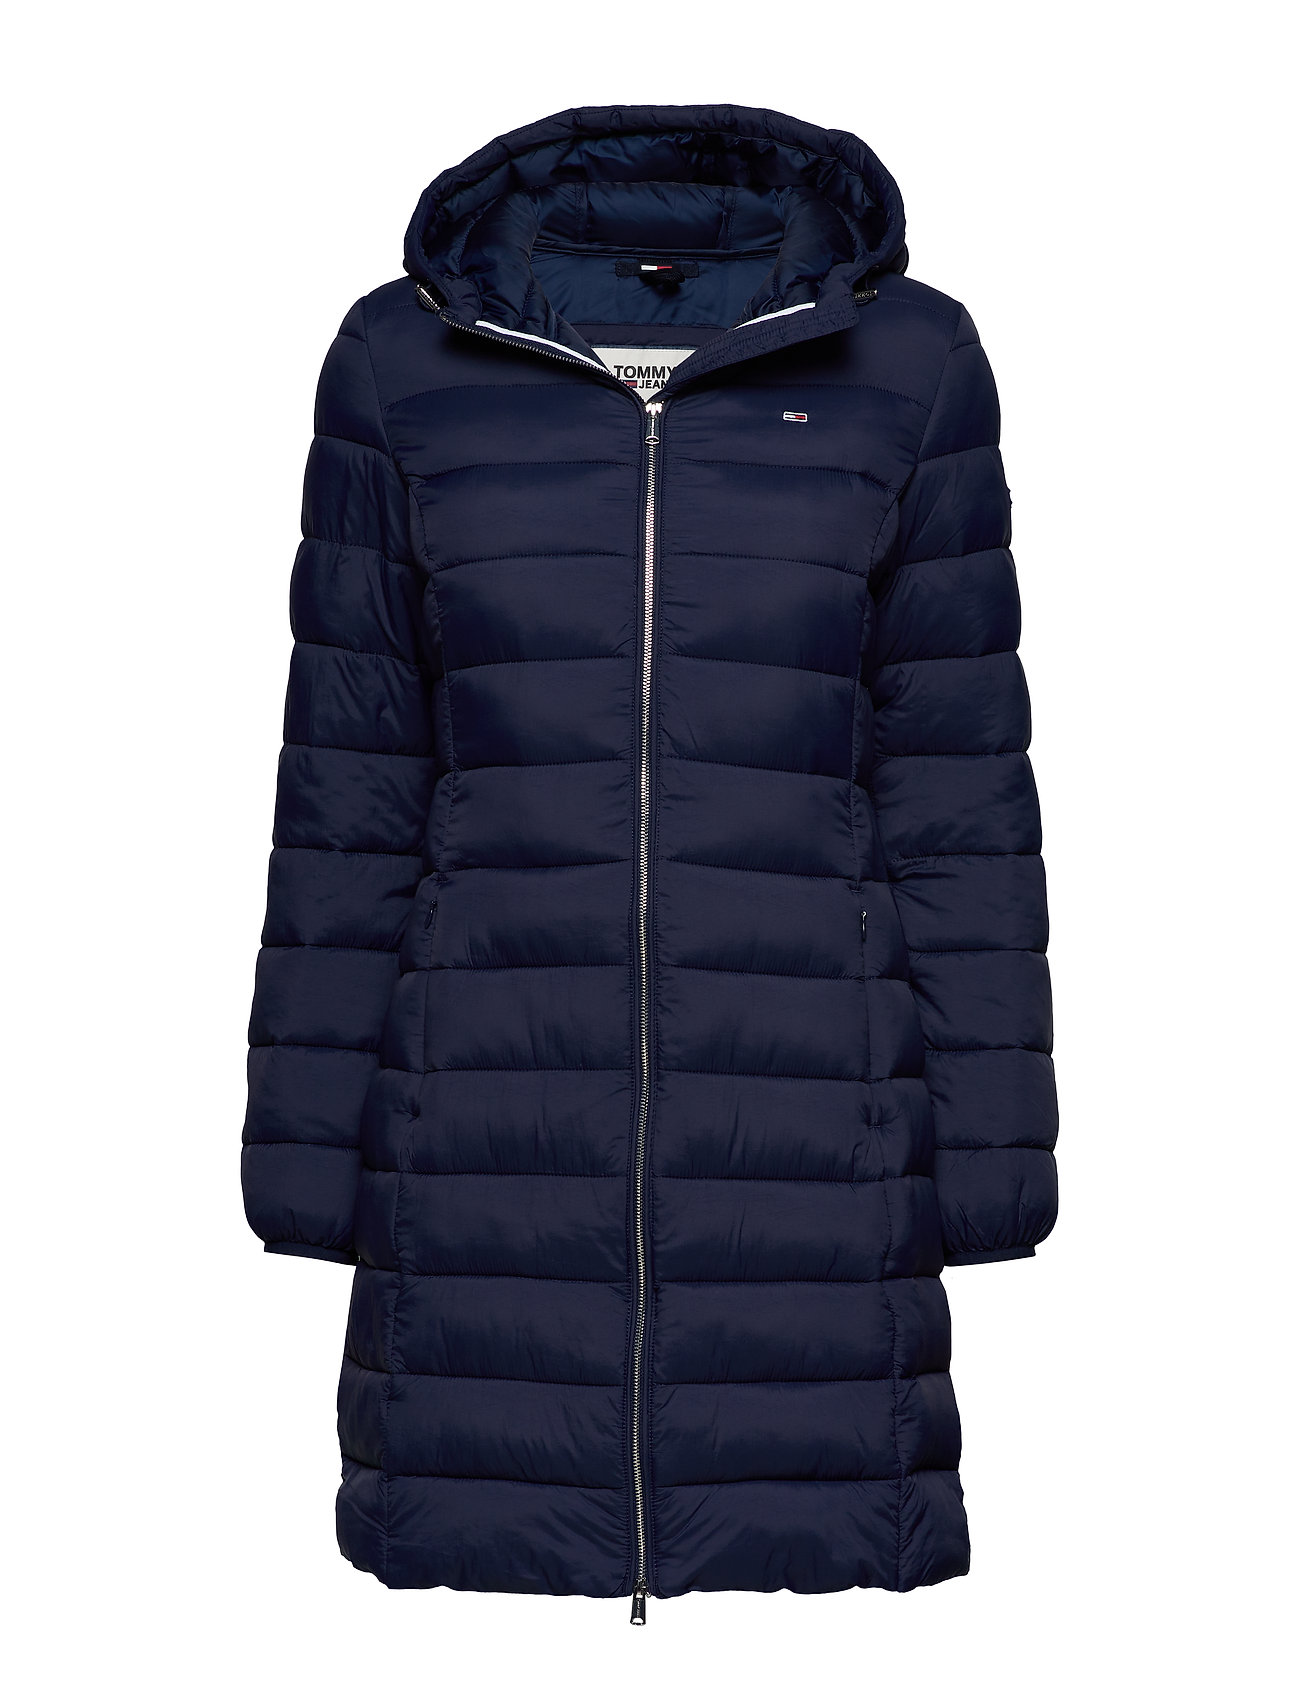 Tjw Basic Quilted Hooded Coat (Black Iris) (199 €) - Tommy ...